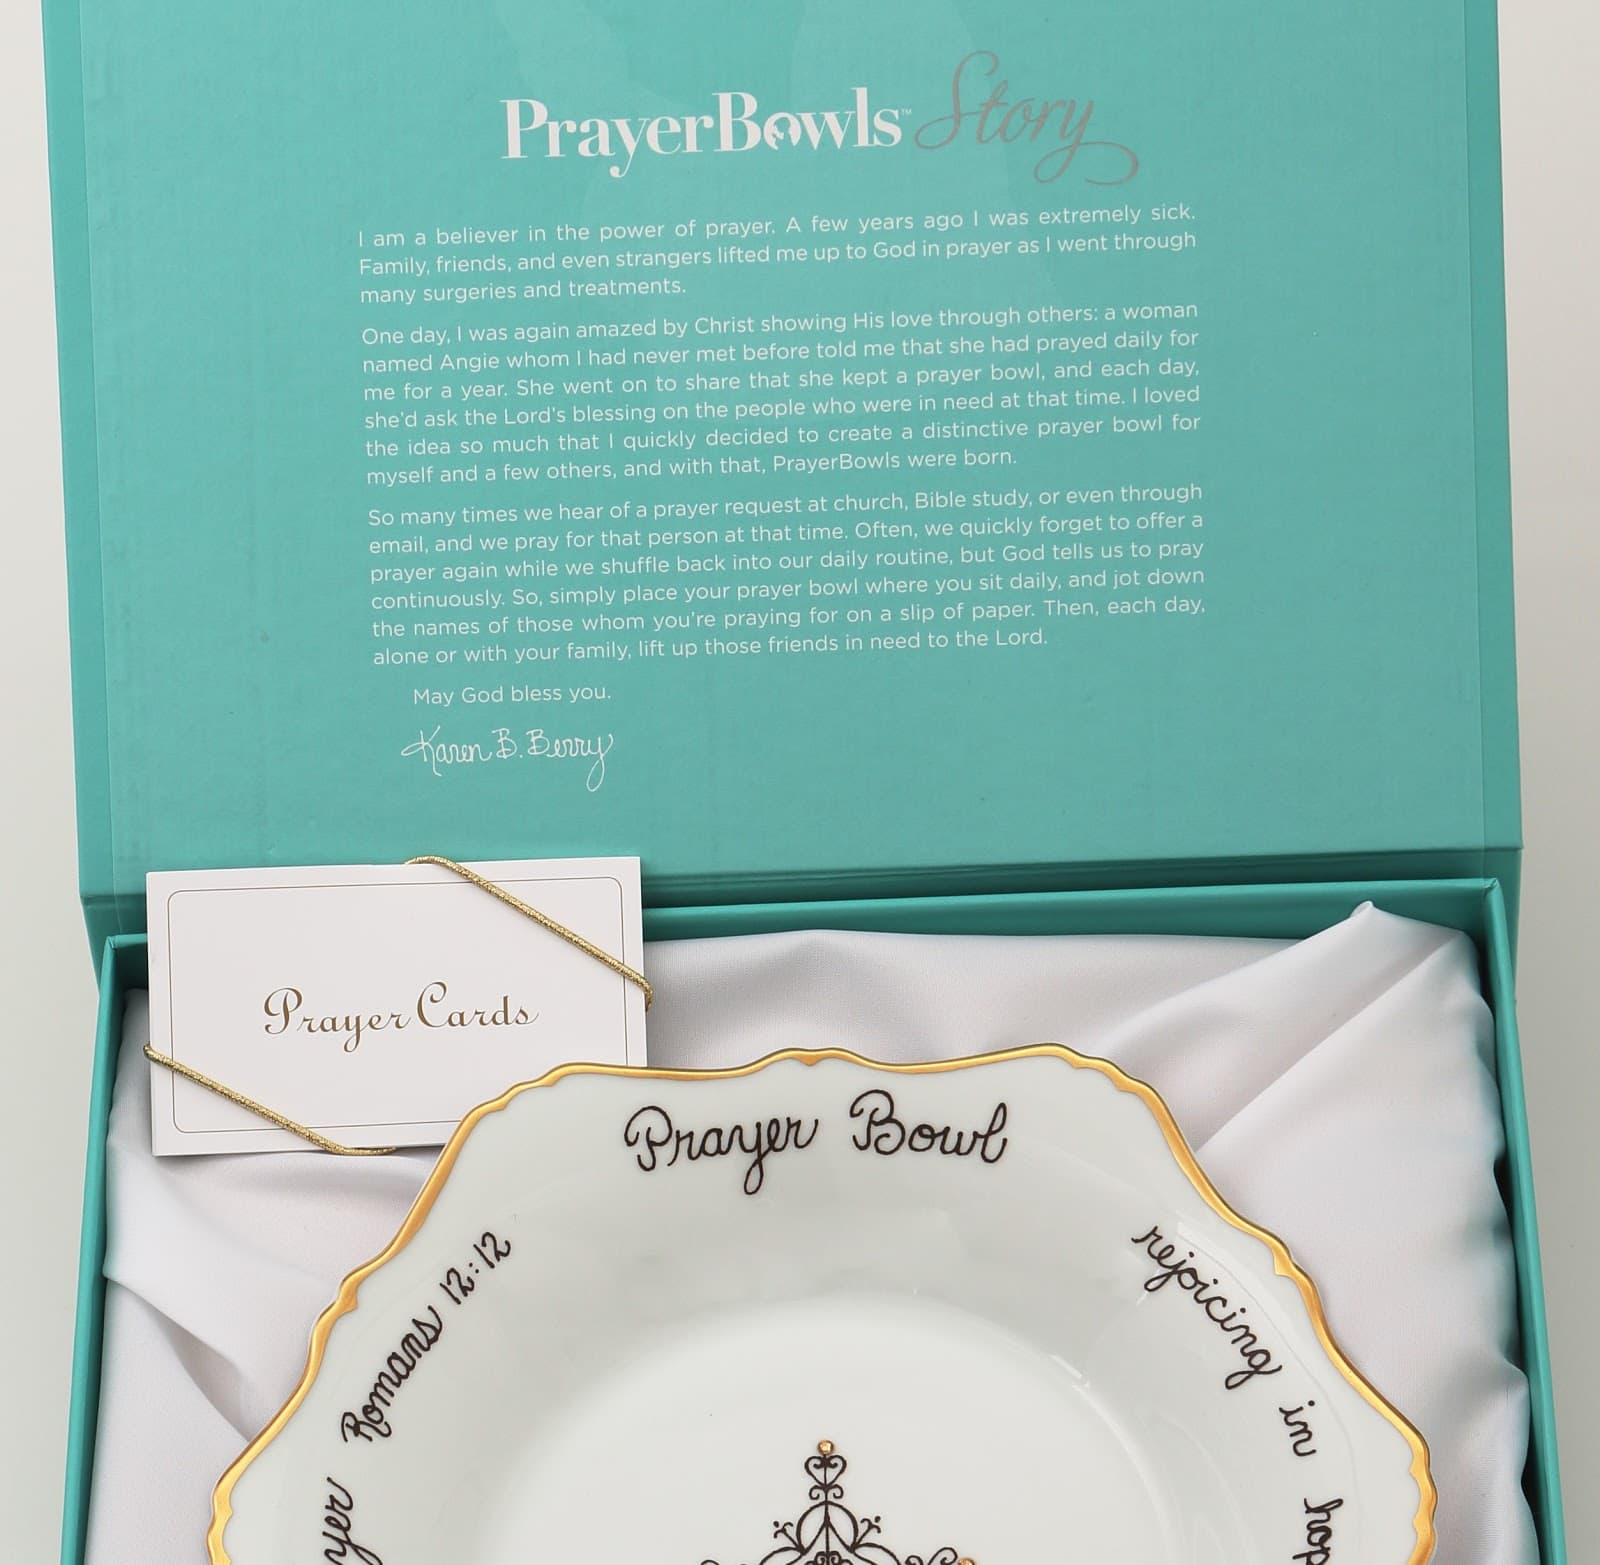 Prayer Bowls: How Tom & Karen Berry Built a Successful Christian